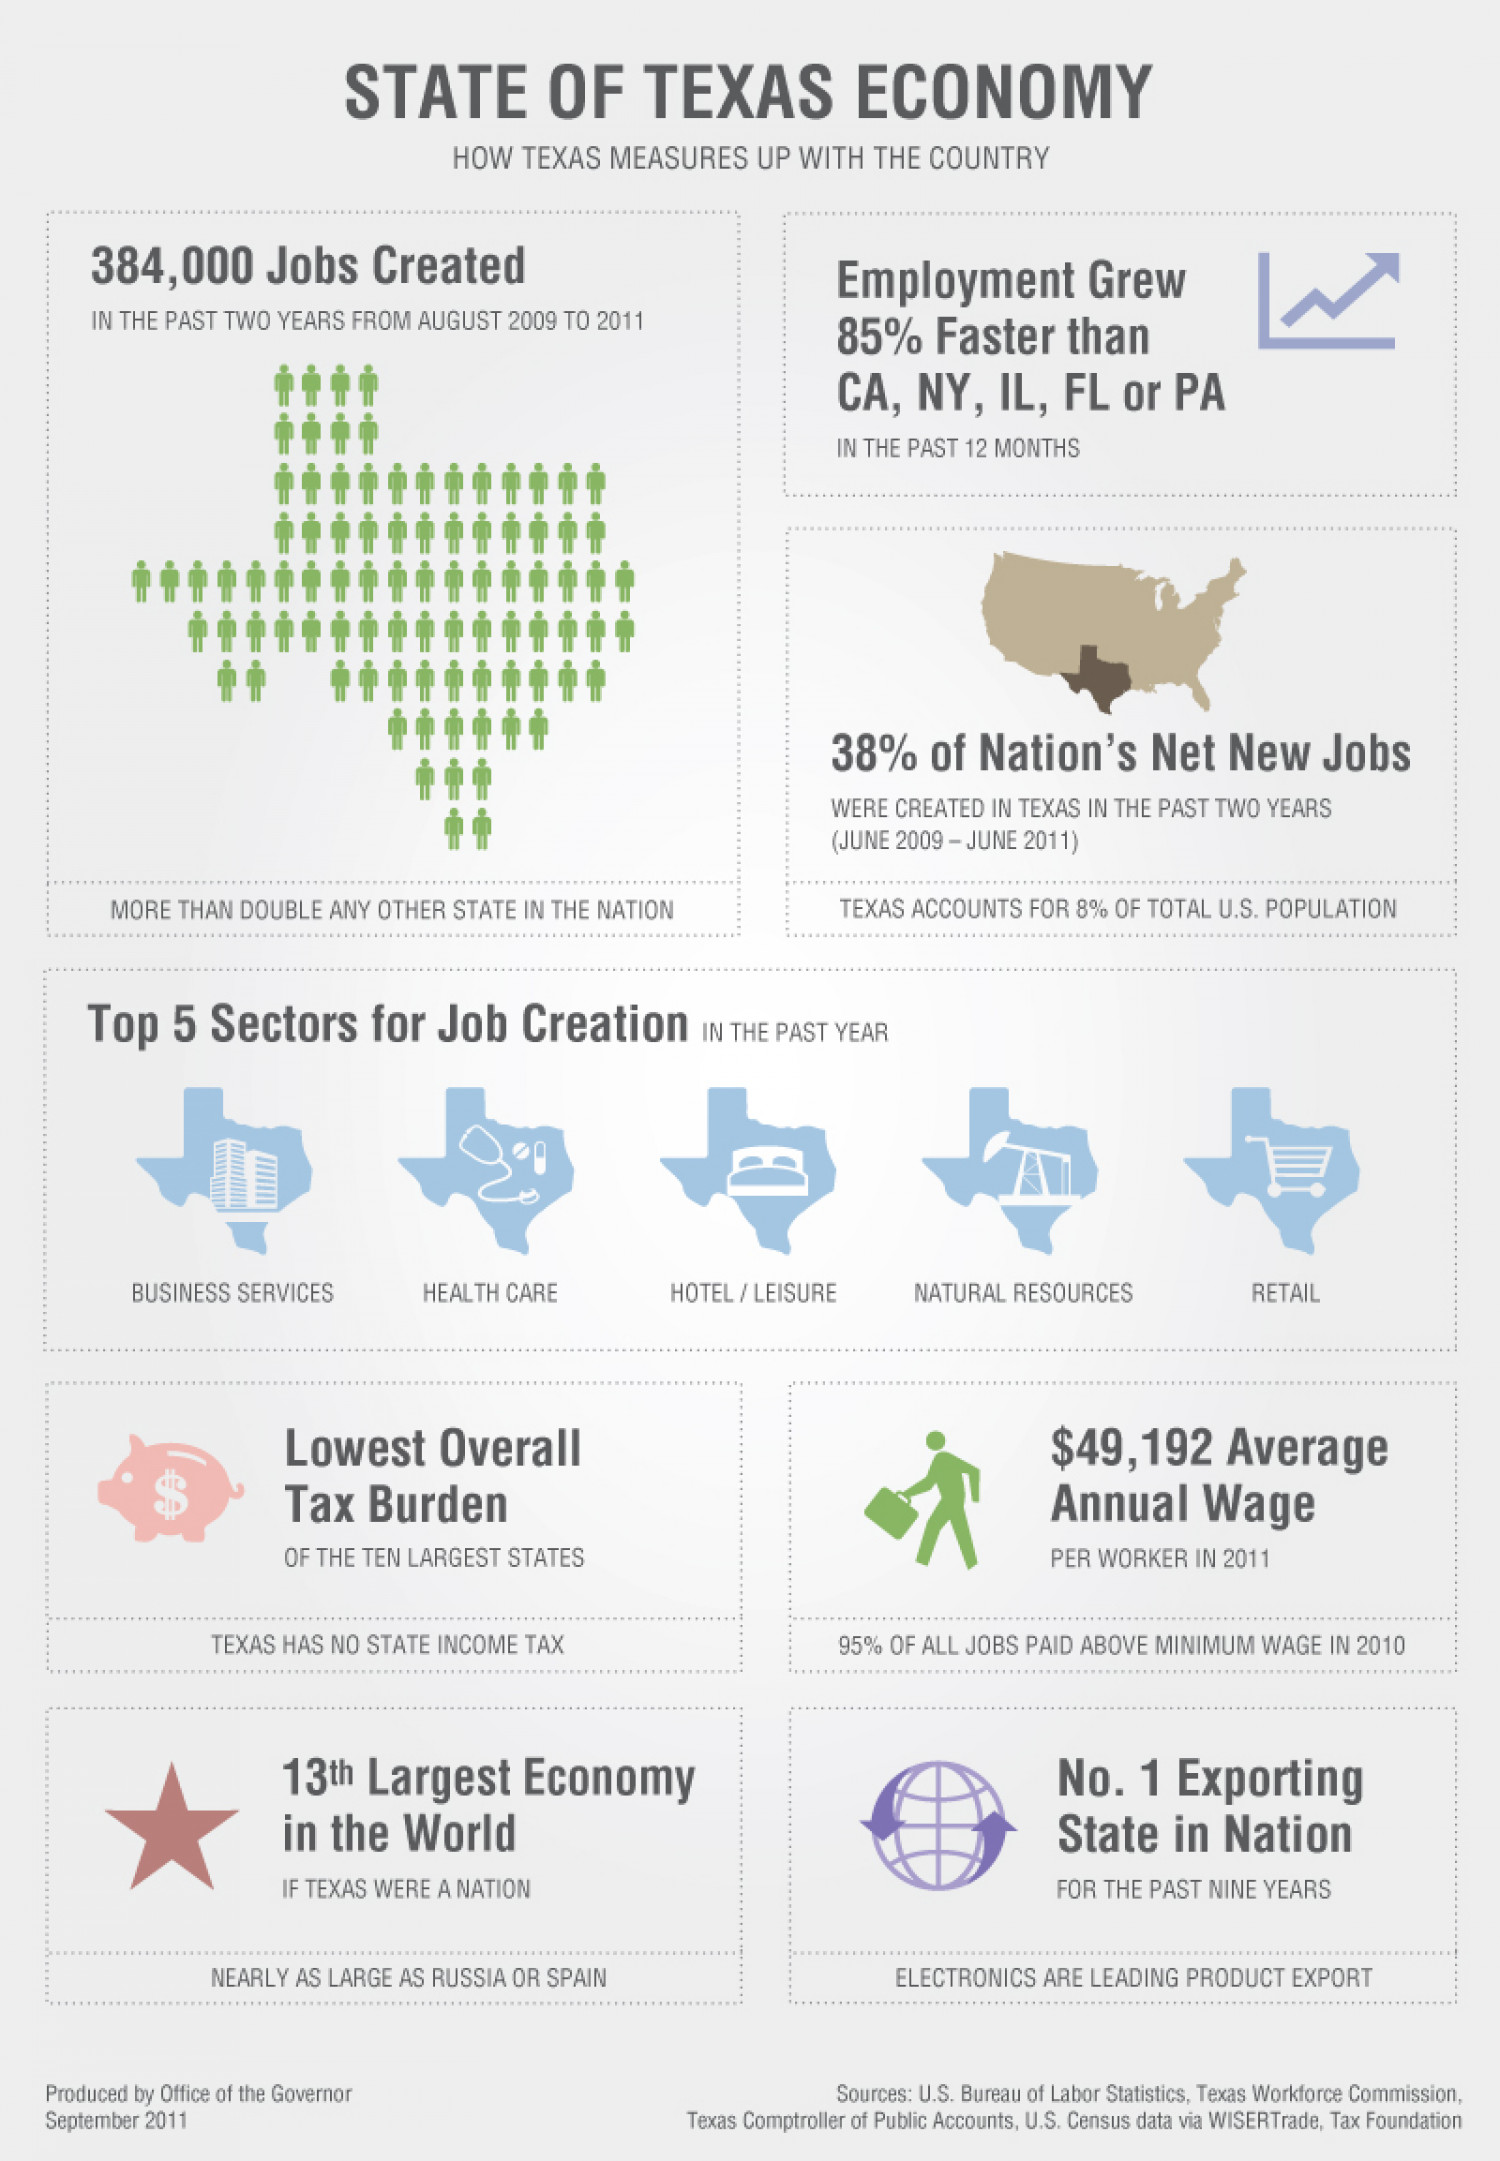 State of Texas Economy Infographic